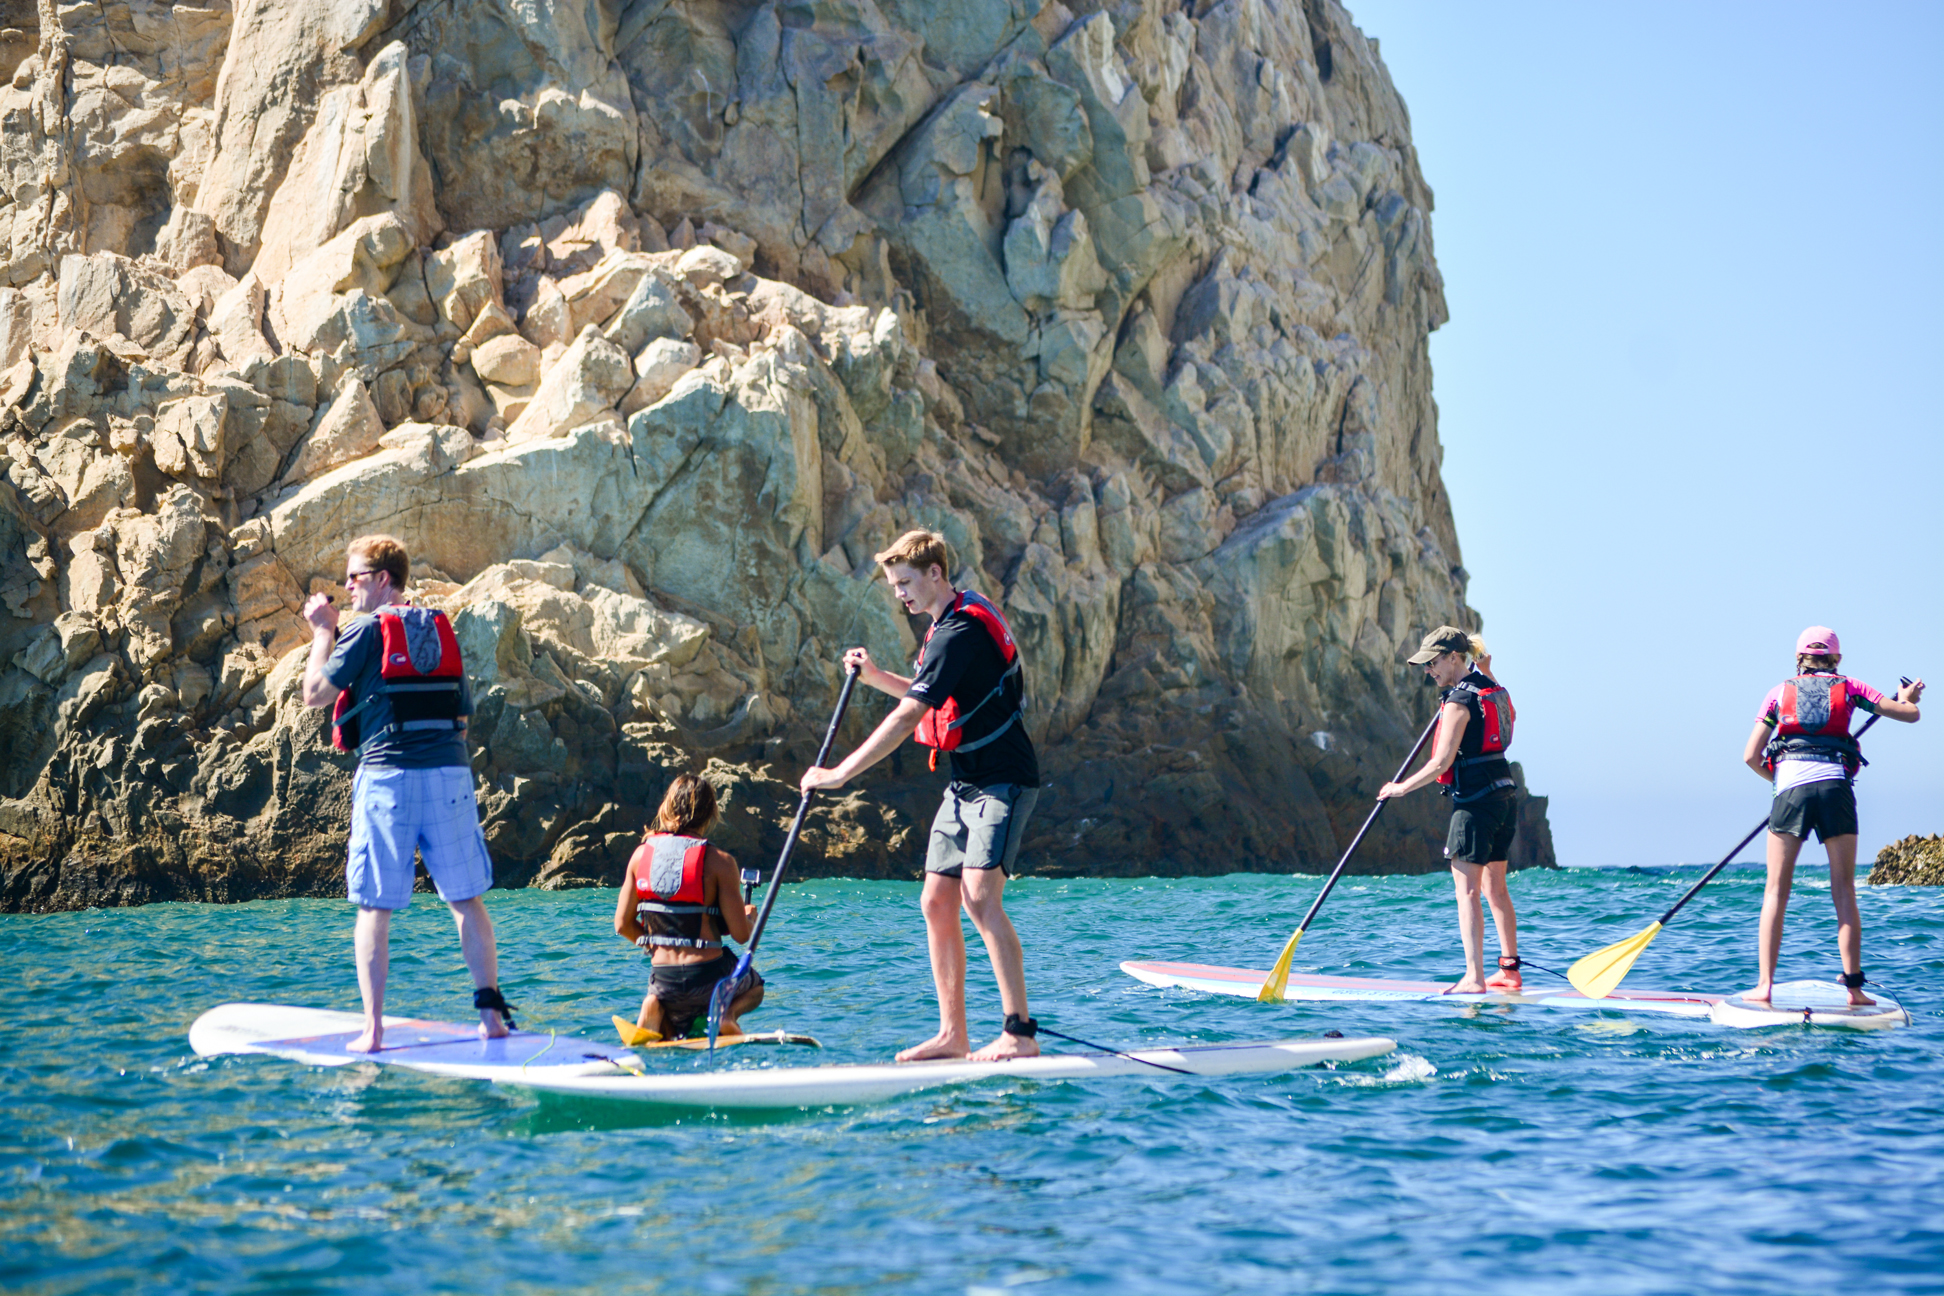 Mexico SUP experience in Cabo: Paddleboard & snorkel El Arco